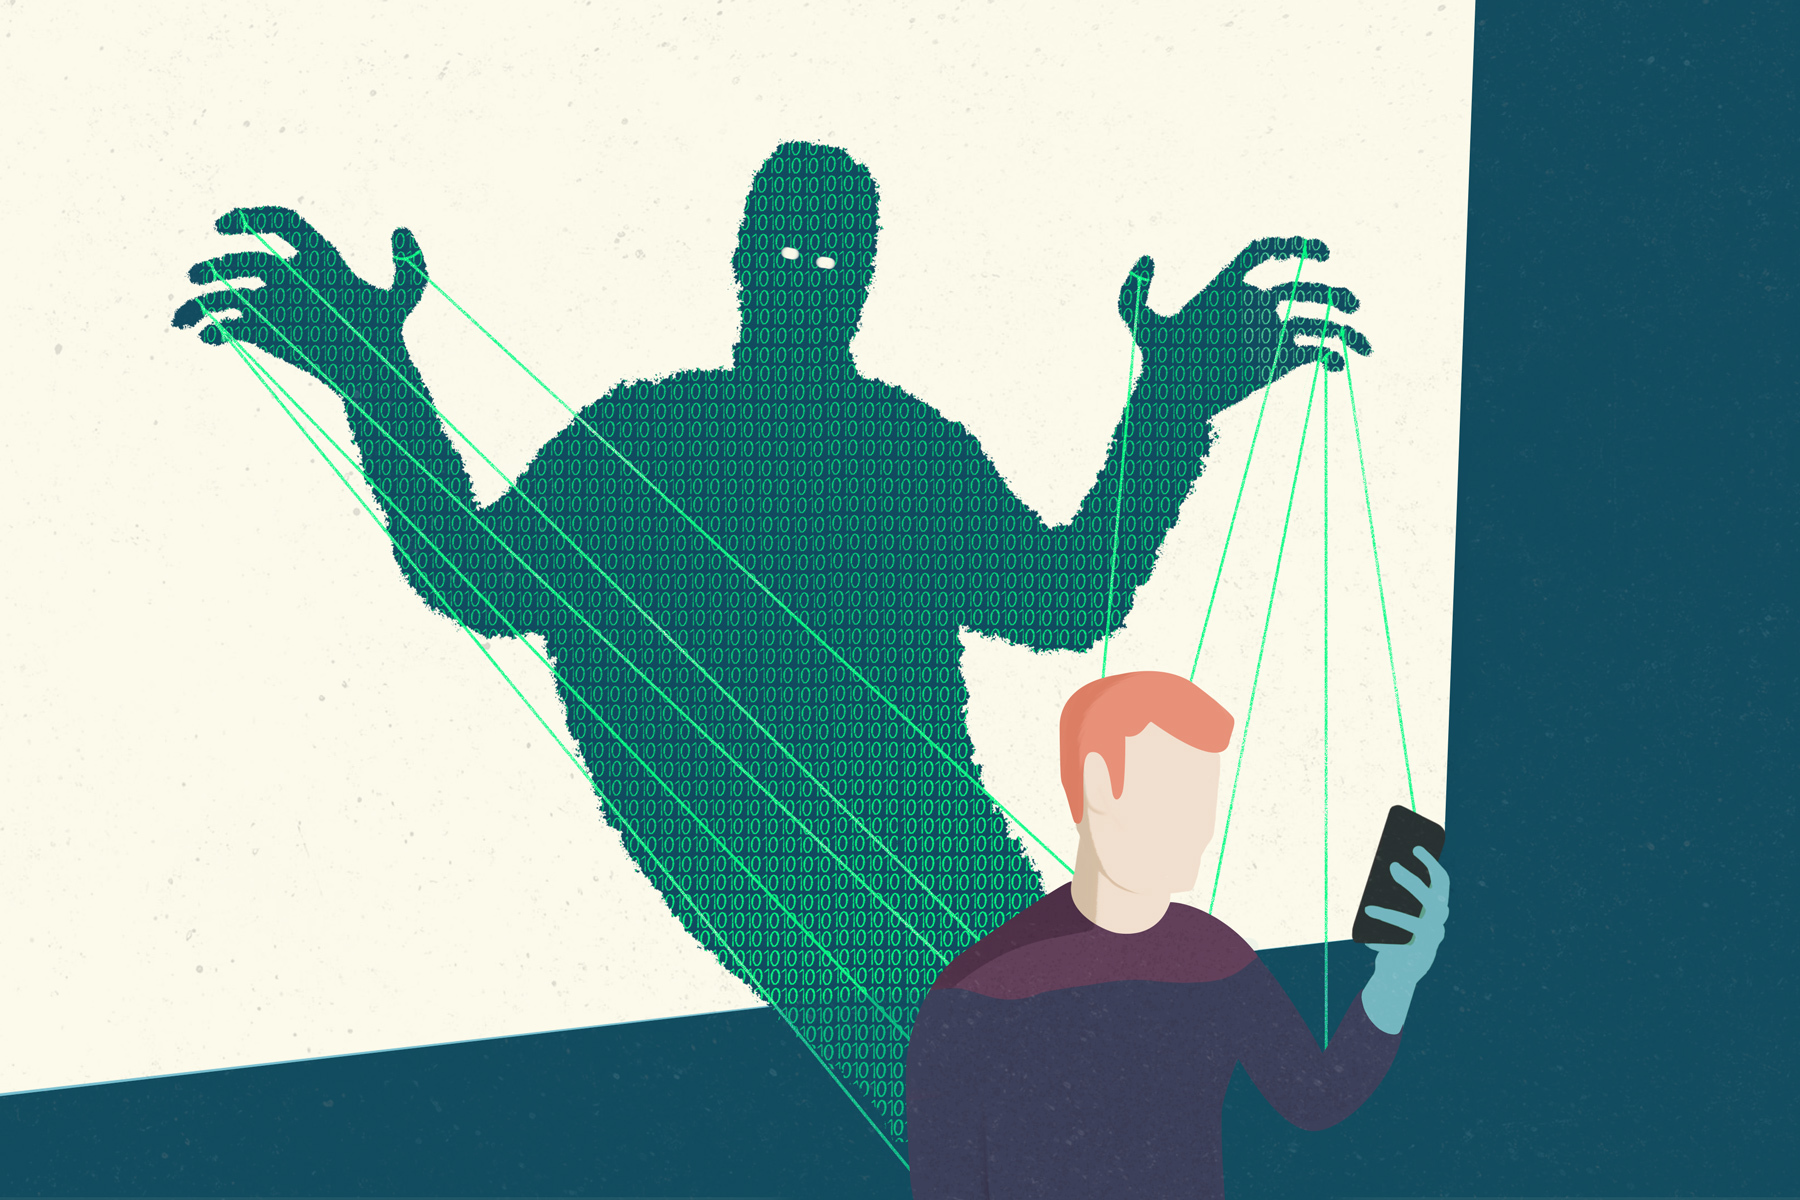 In an article about Netflix's 'The Social Dilemma,' an illustration showing a person on their phone. Illustration by Adam Lee.